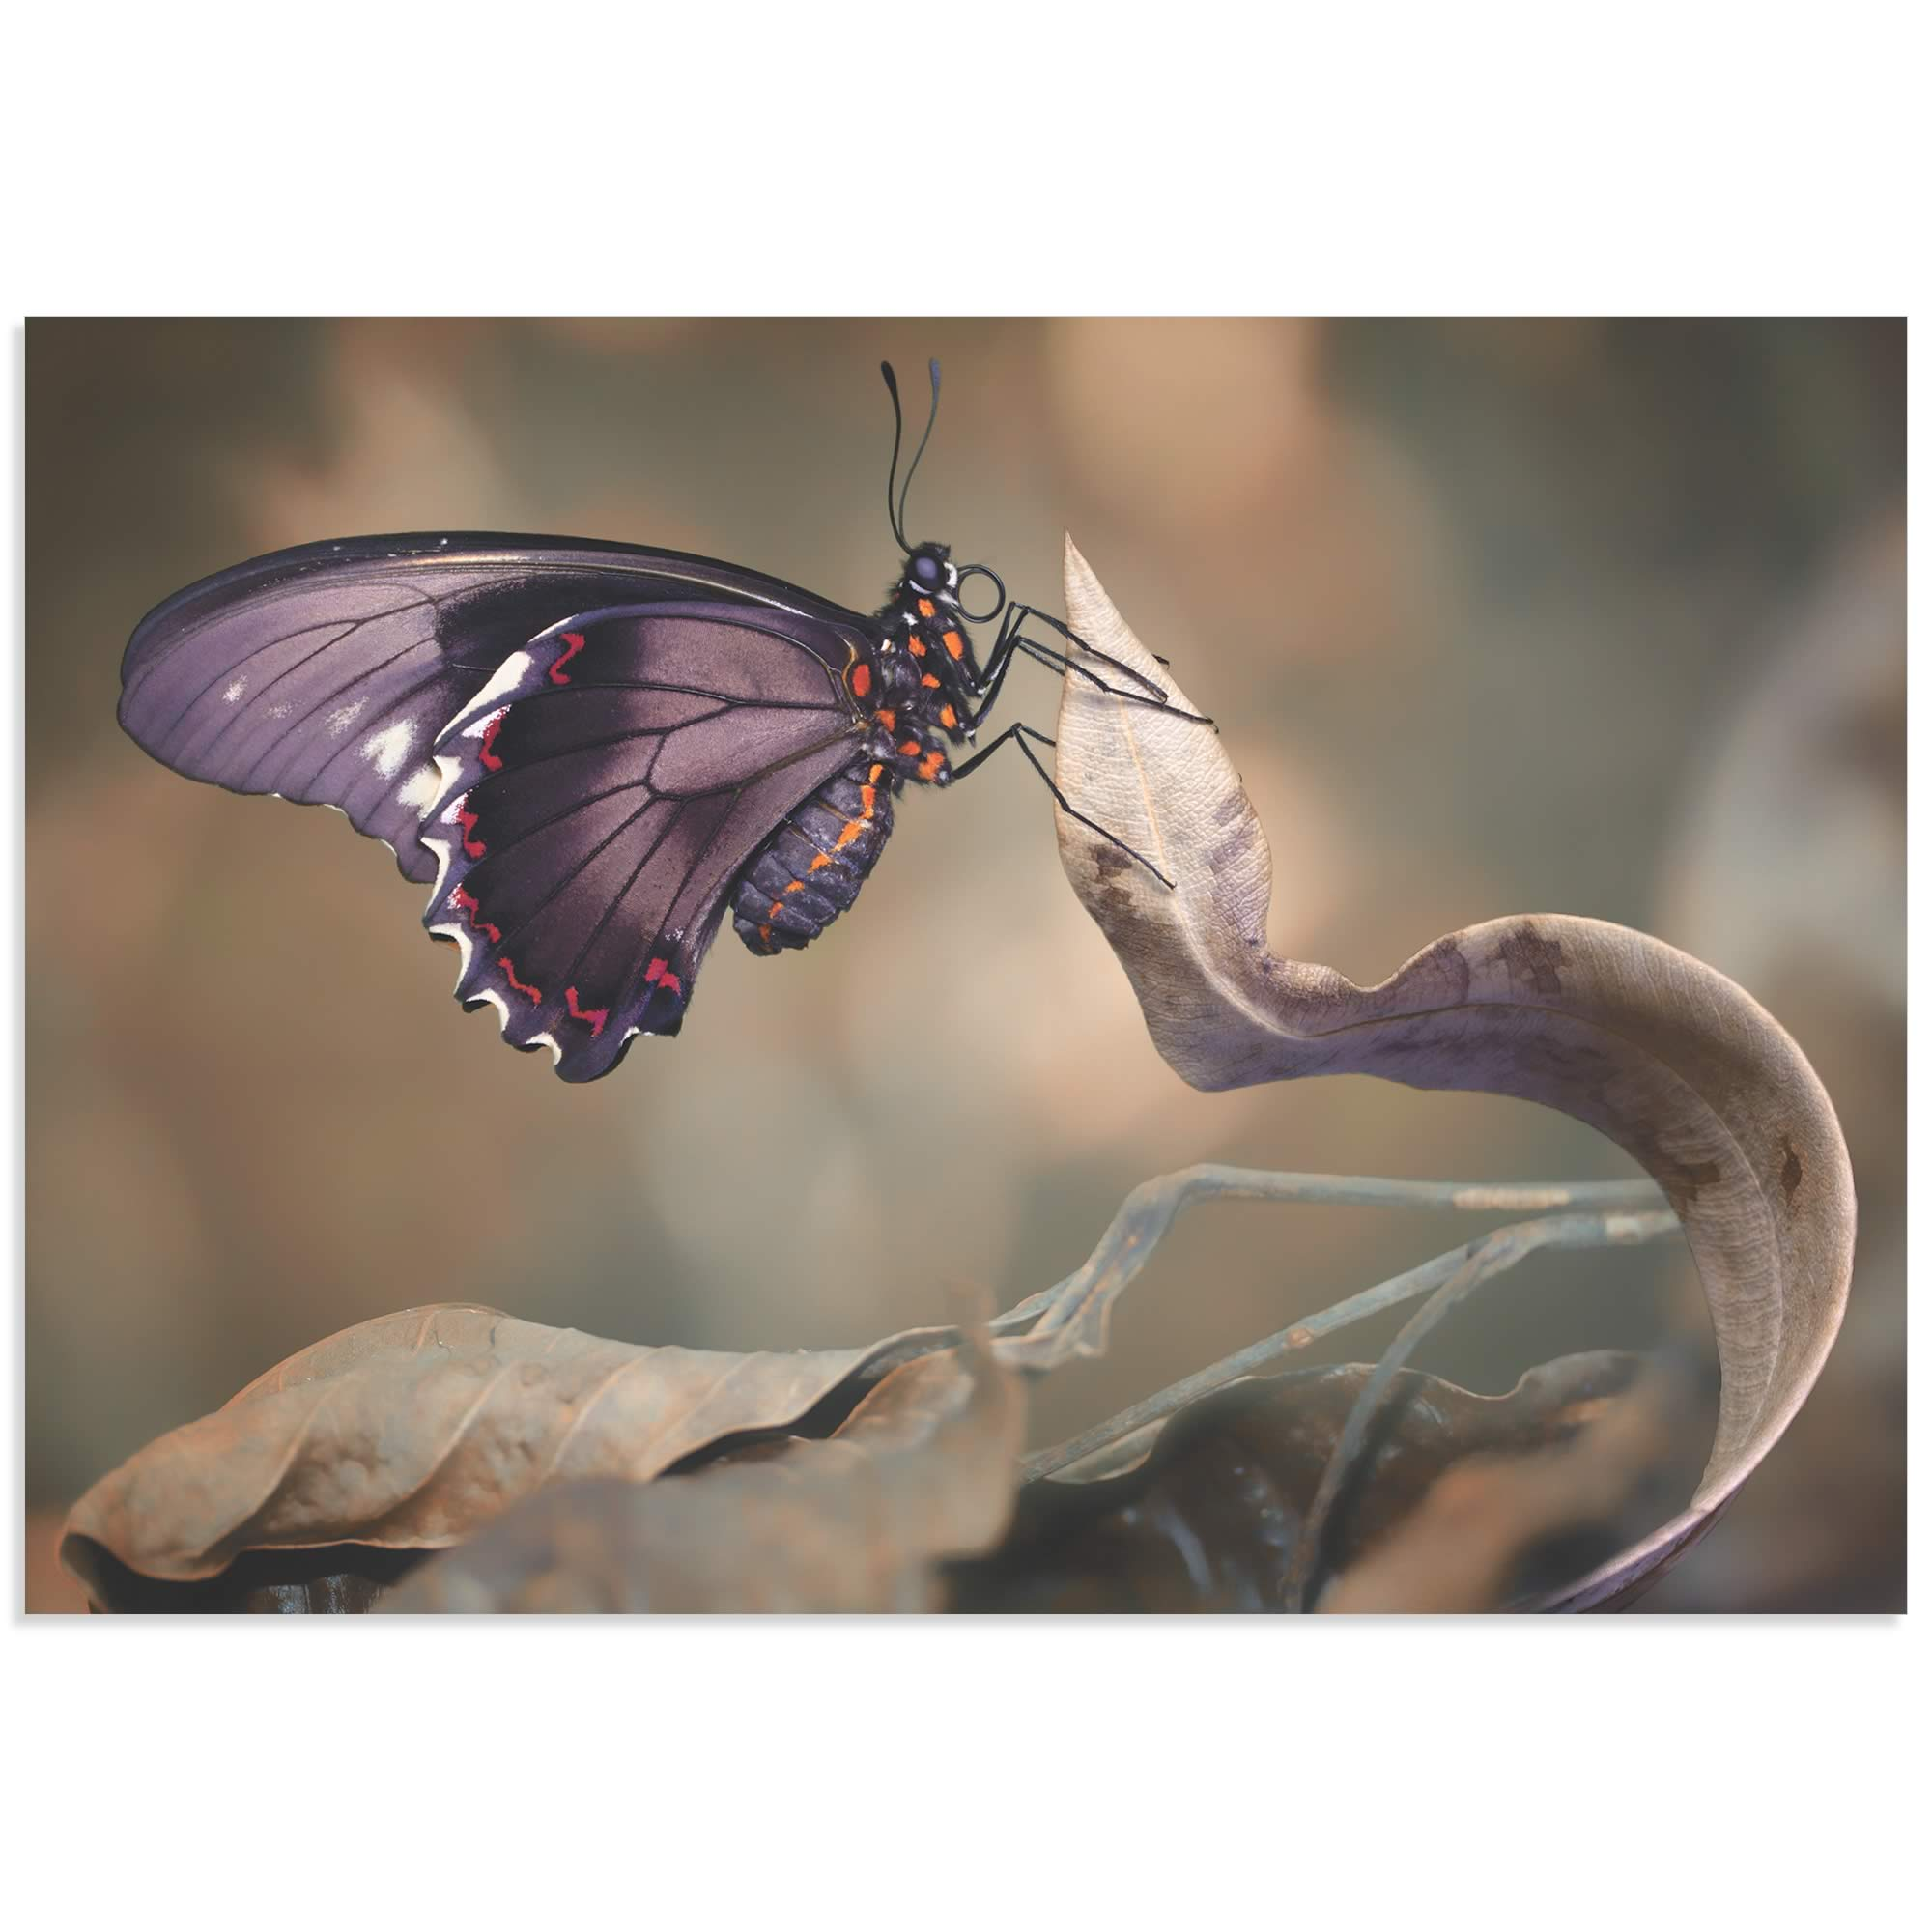 Swallowtail Butterfly by Jimmy Hoffman - Butterfly Wall Art on Metal or Acrylic